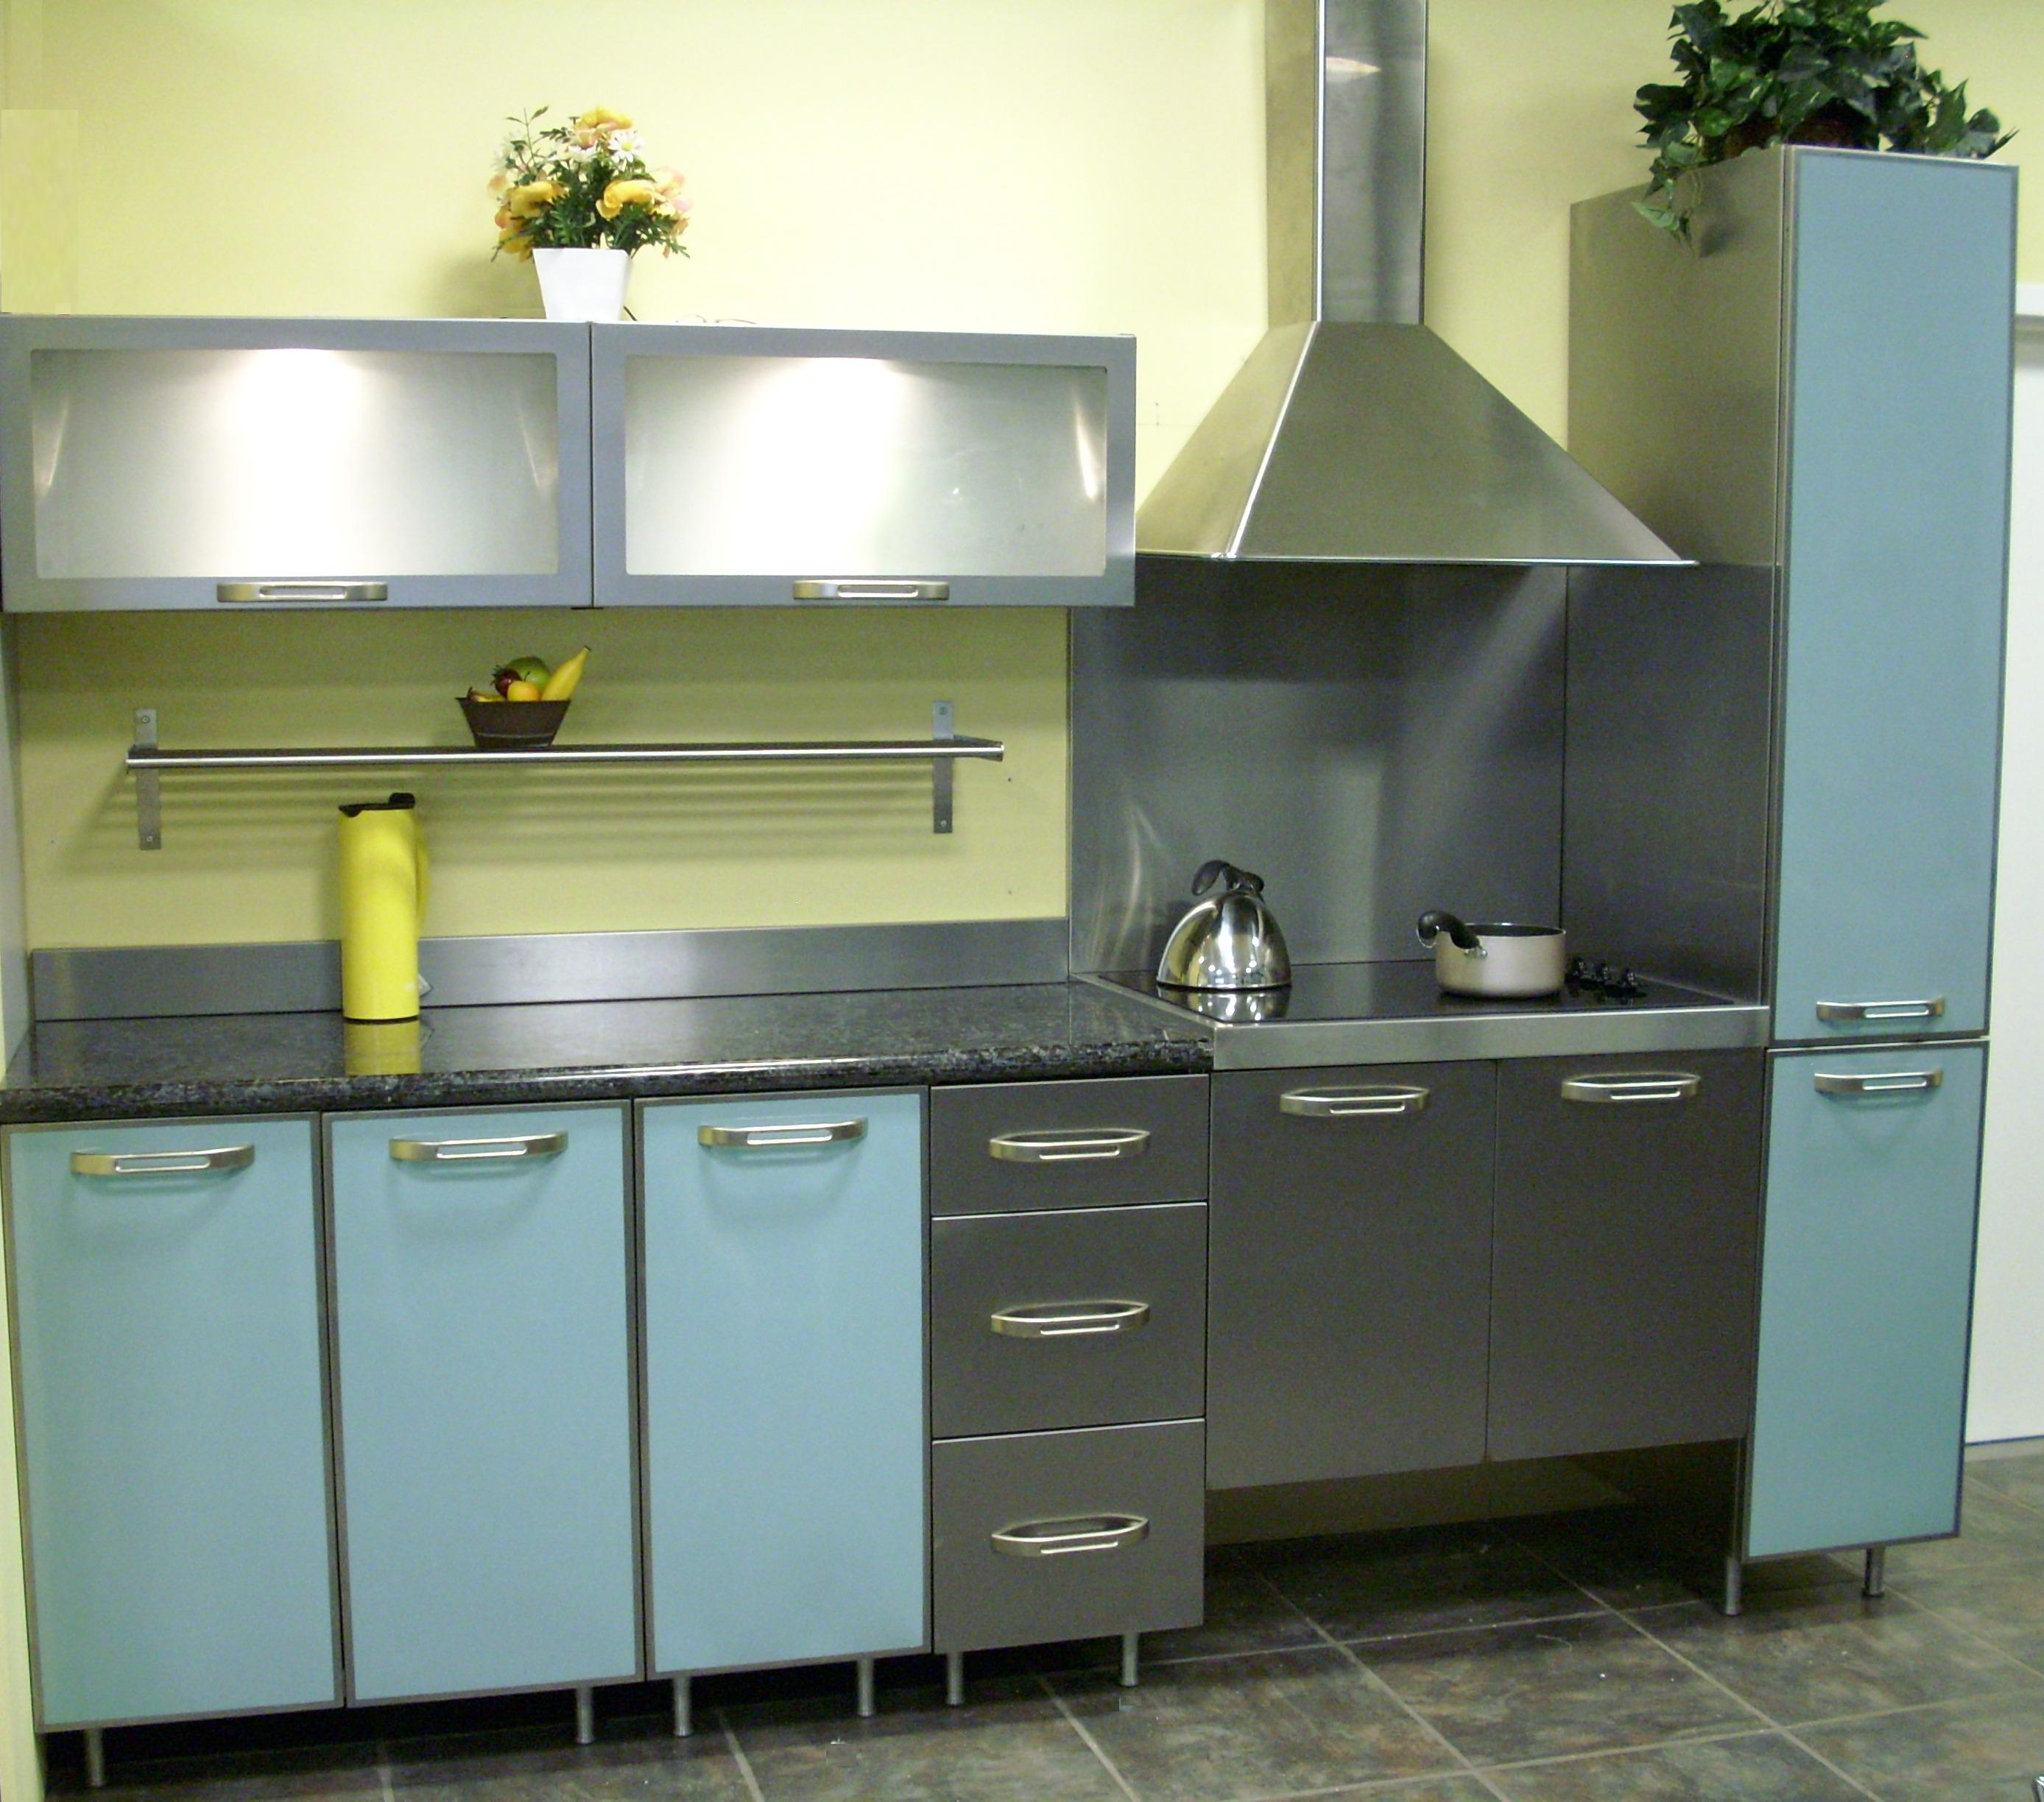 Howling Sink Stainless Steel Cabinets Stainless Steel Vintage Kitchen Stainless Steel Kitchen Cabinets Steelkitchen Stainless Steel Cabinets Bbq houzz 01 Stainless Steel Cabinets